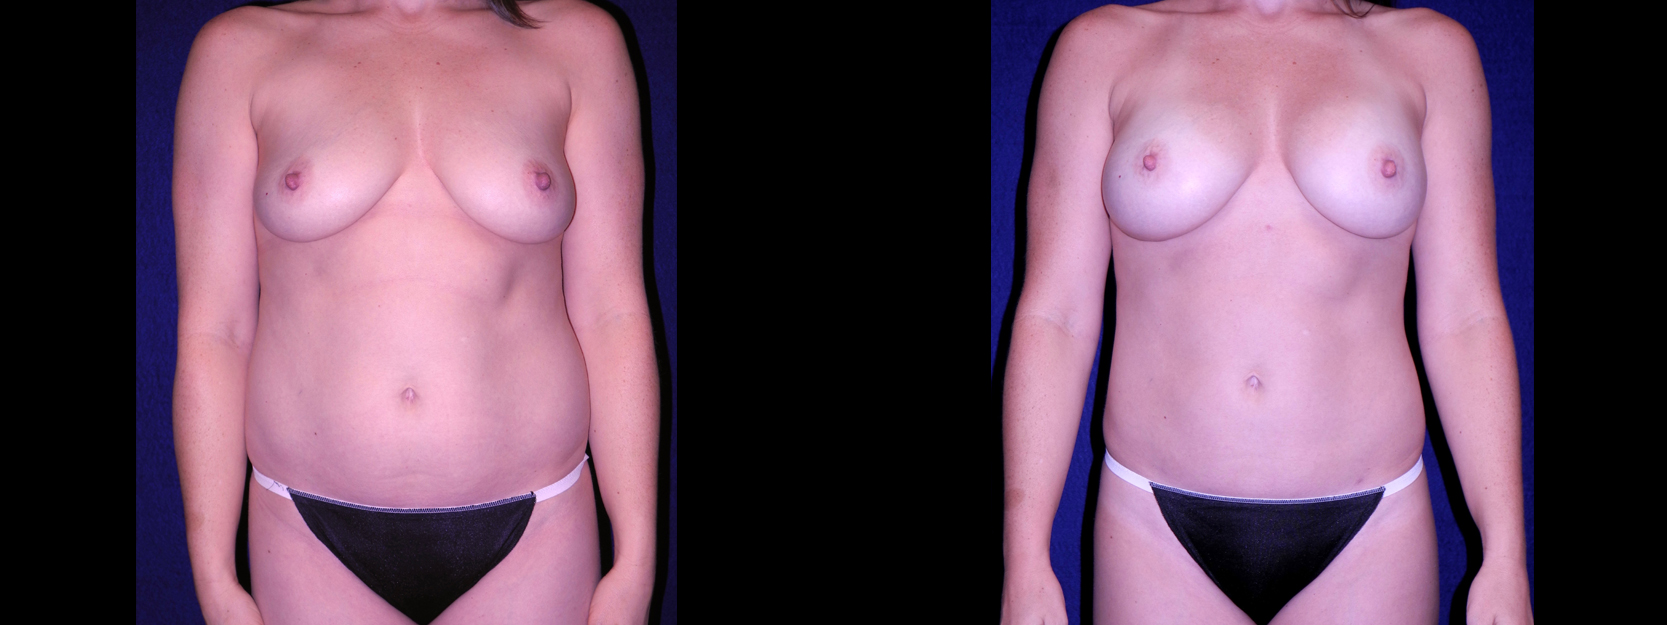 Frontal View - Tummy Tuck with Breast Augmentation